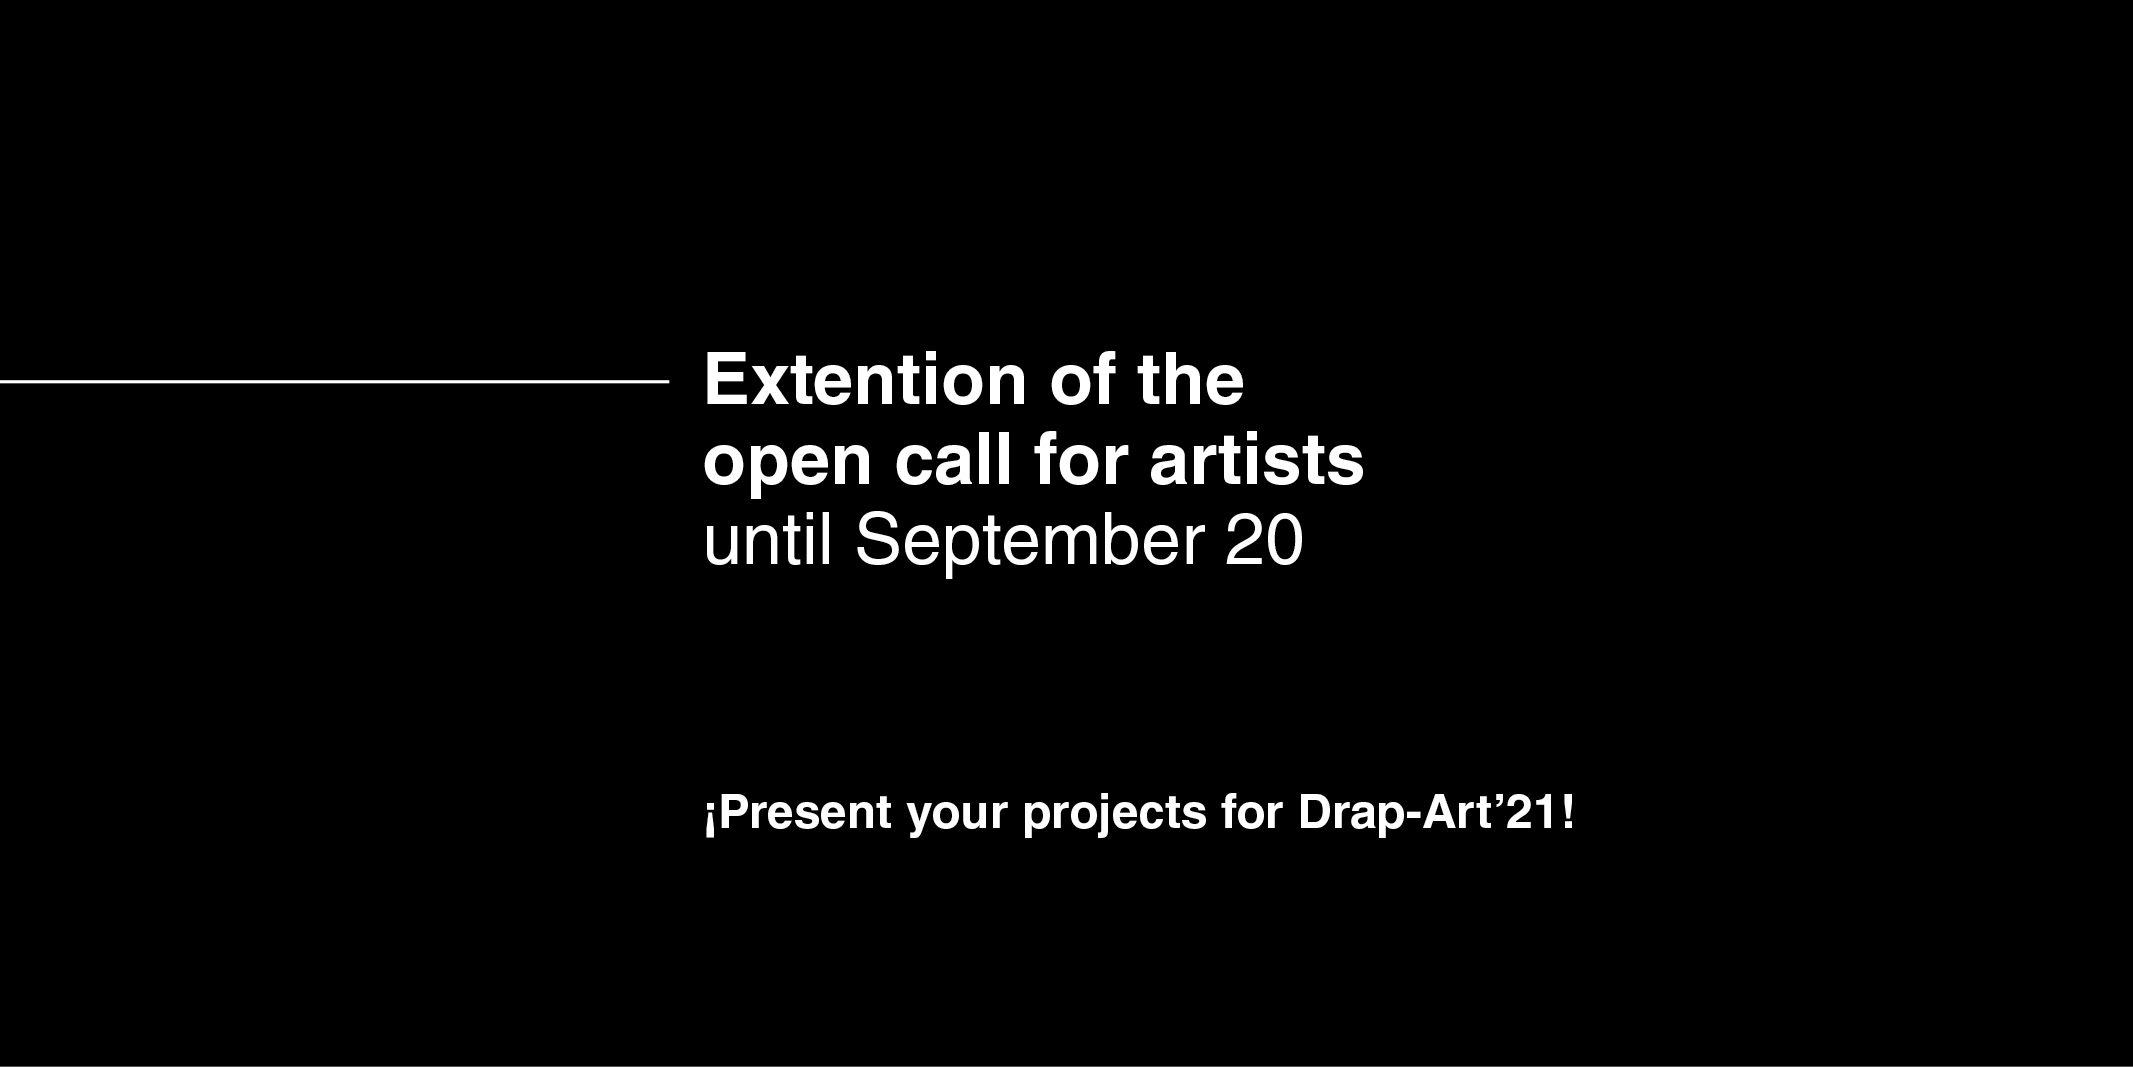 DrapArt'21 – Extension call for artists